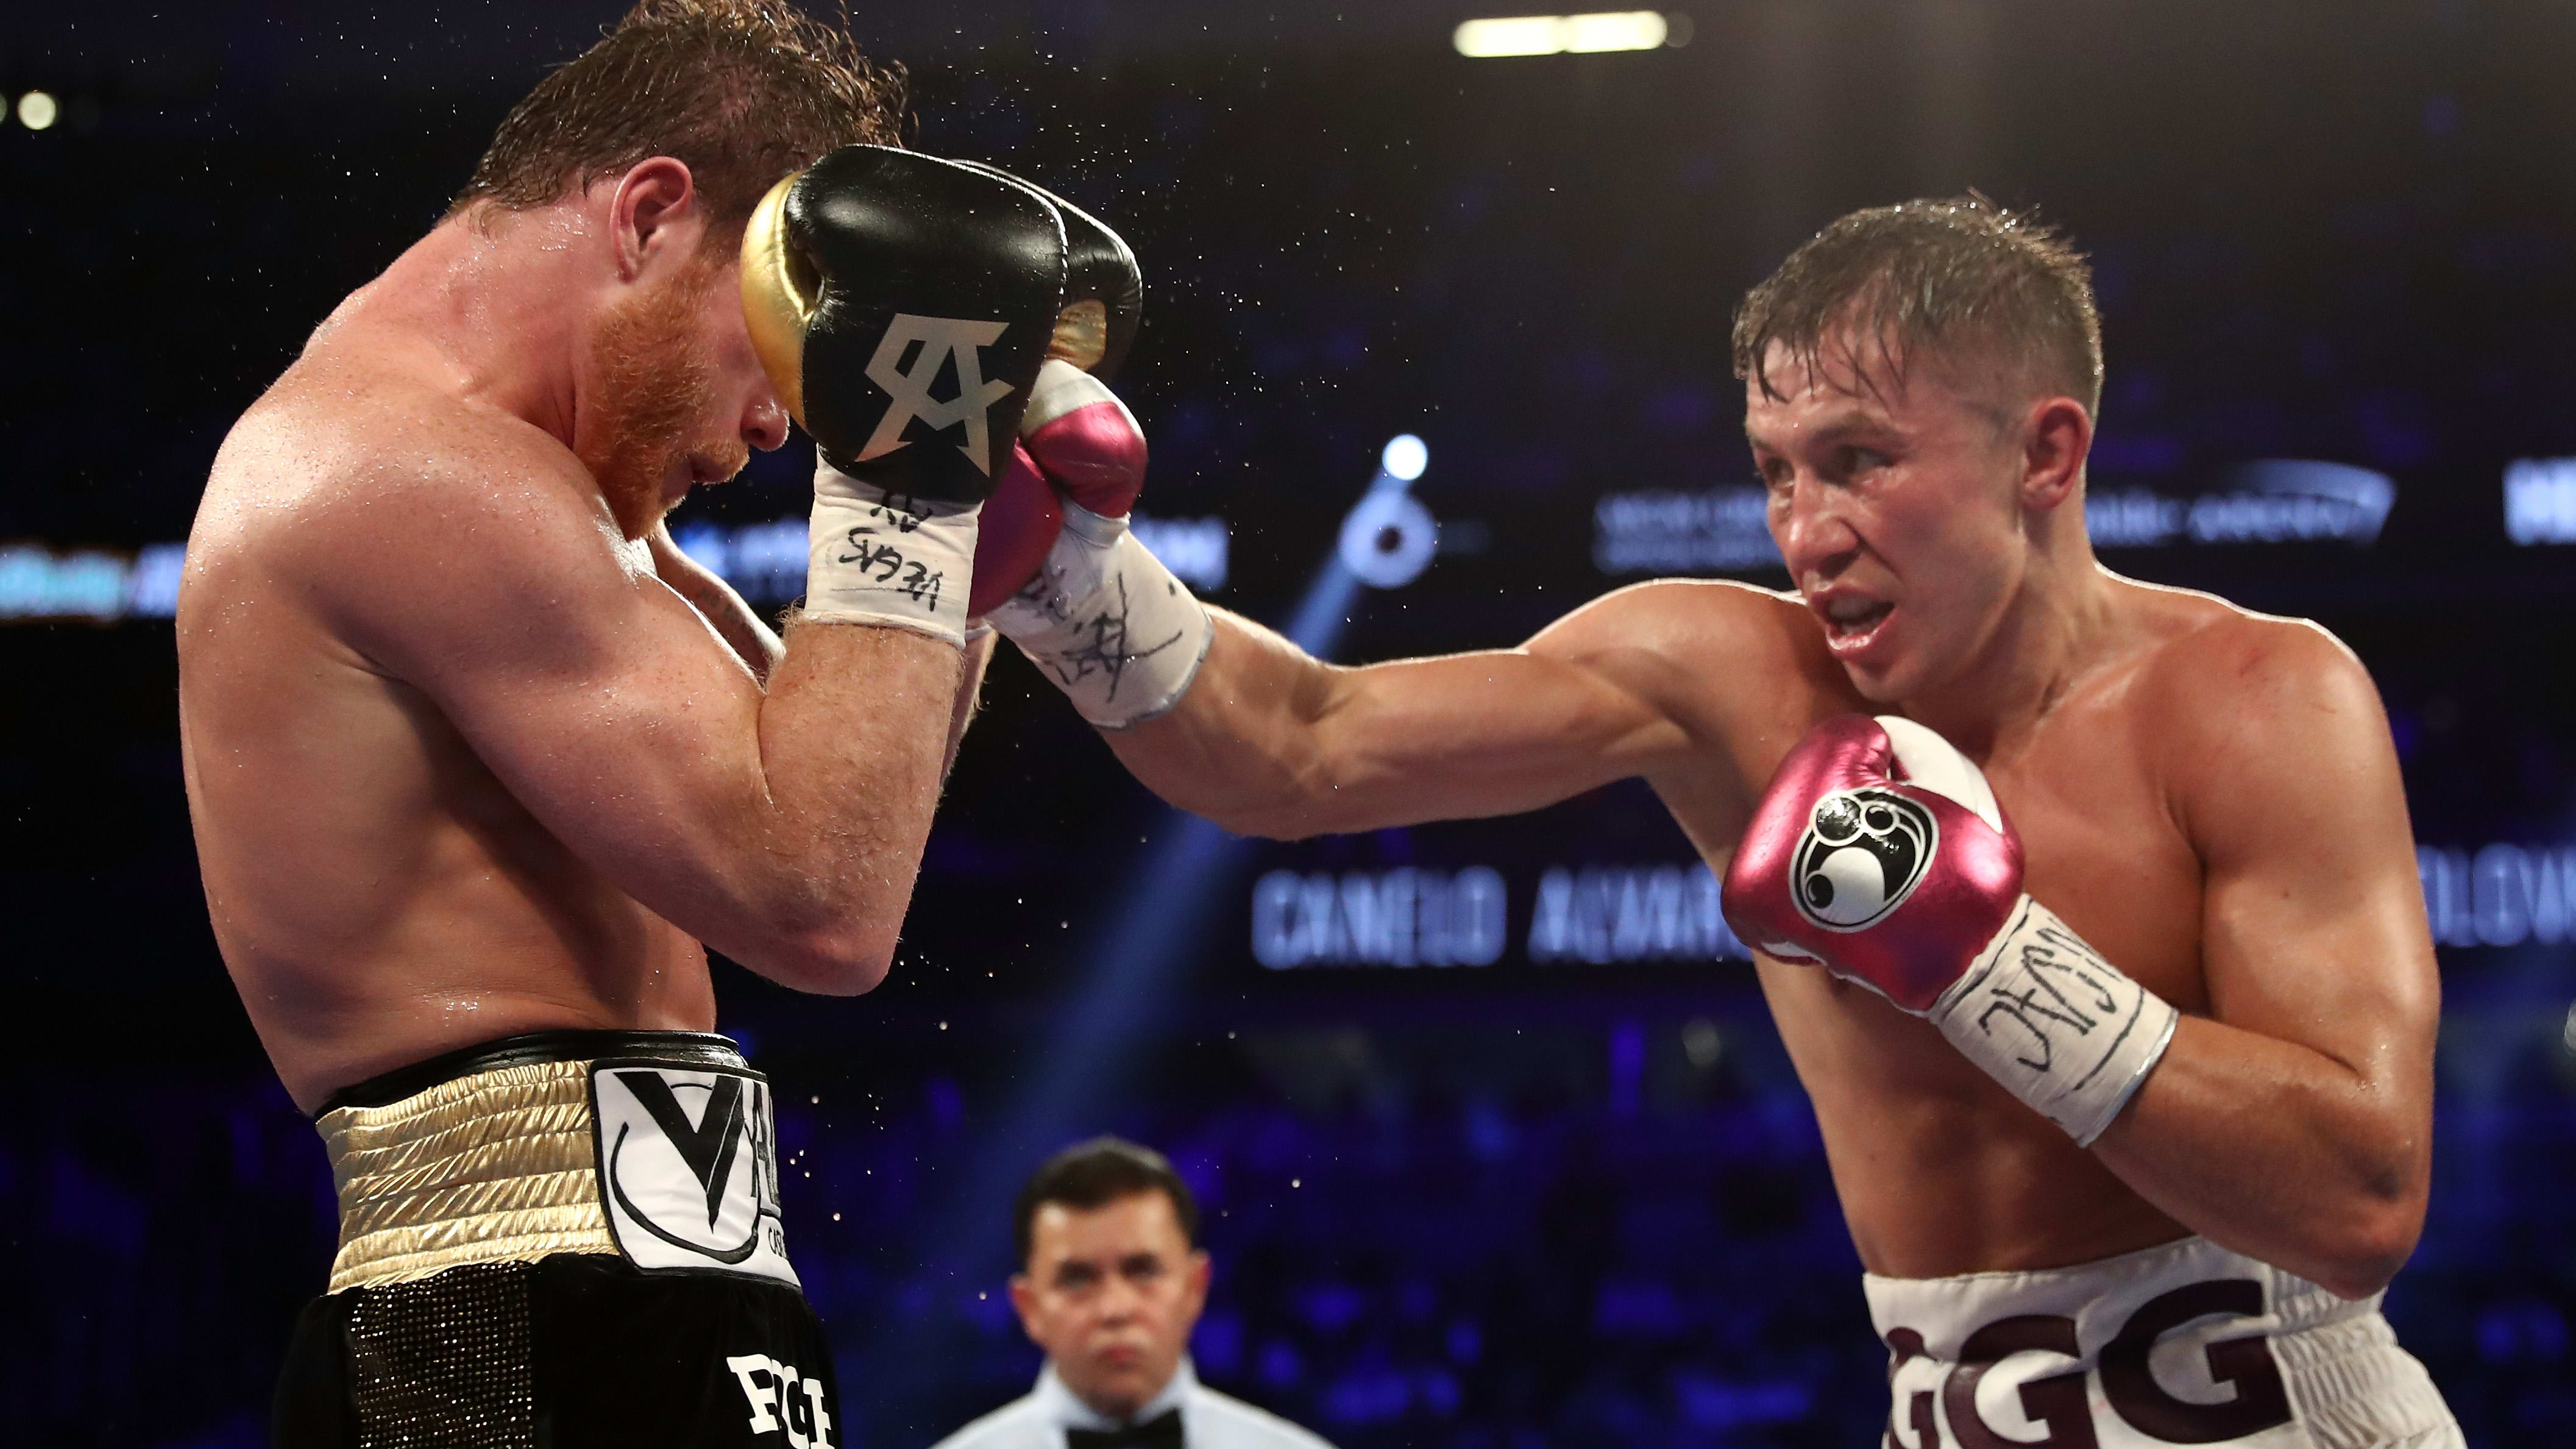 LAS VEGAS, NV - SEPTEMBER 15:  Gennady Golovkin (R) punches Canelo Alvarez during their WBC/WBA middleweight title fight at T-Mobile Arena on September 15, 2018 in Las Vegas, Nevada.  (Photo by Al Bello/Getty Images)